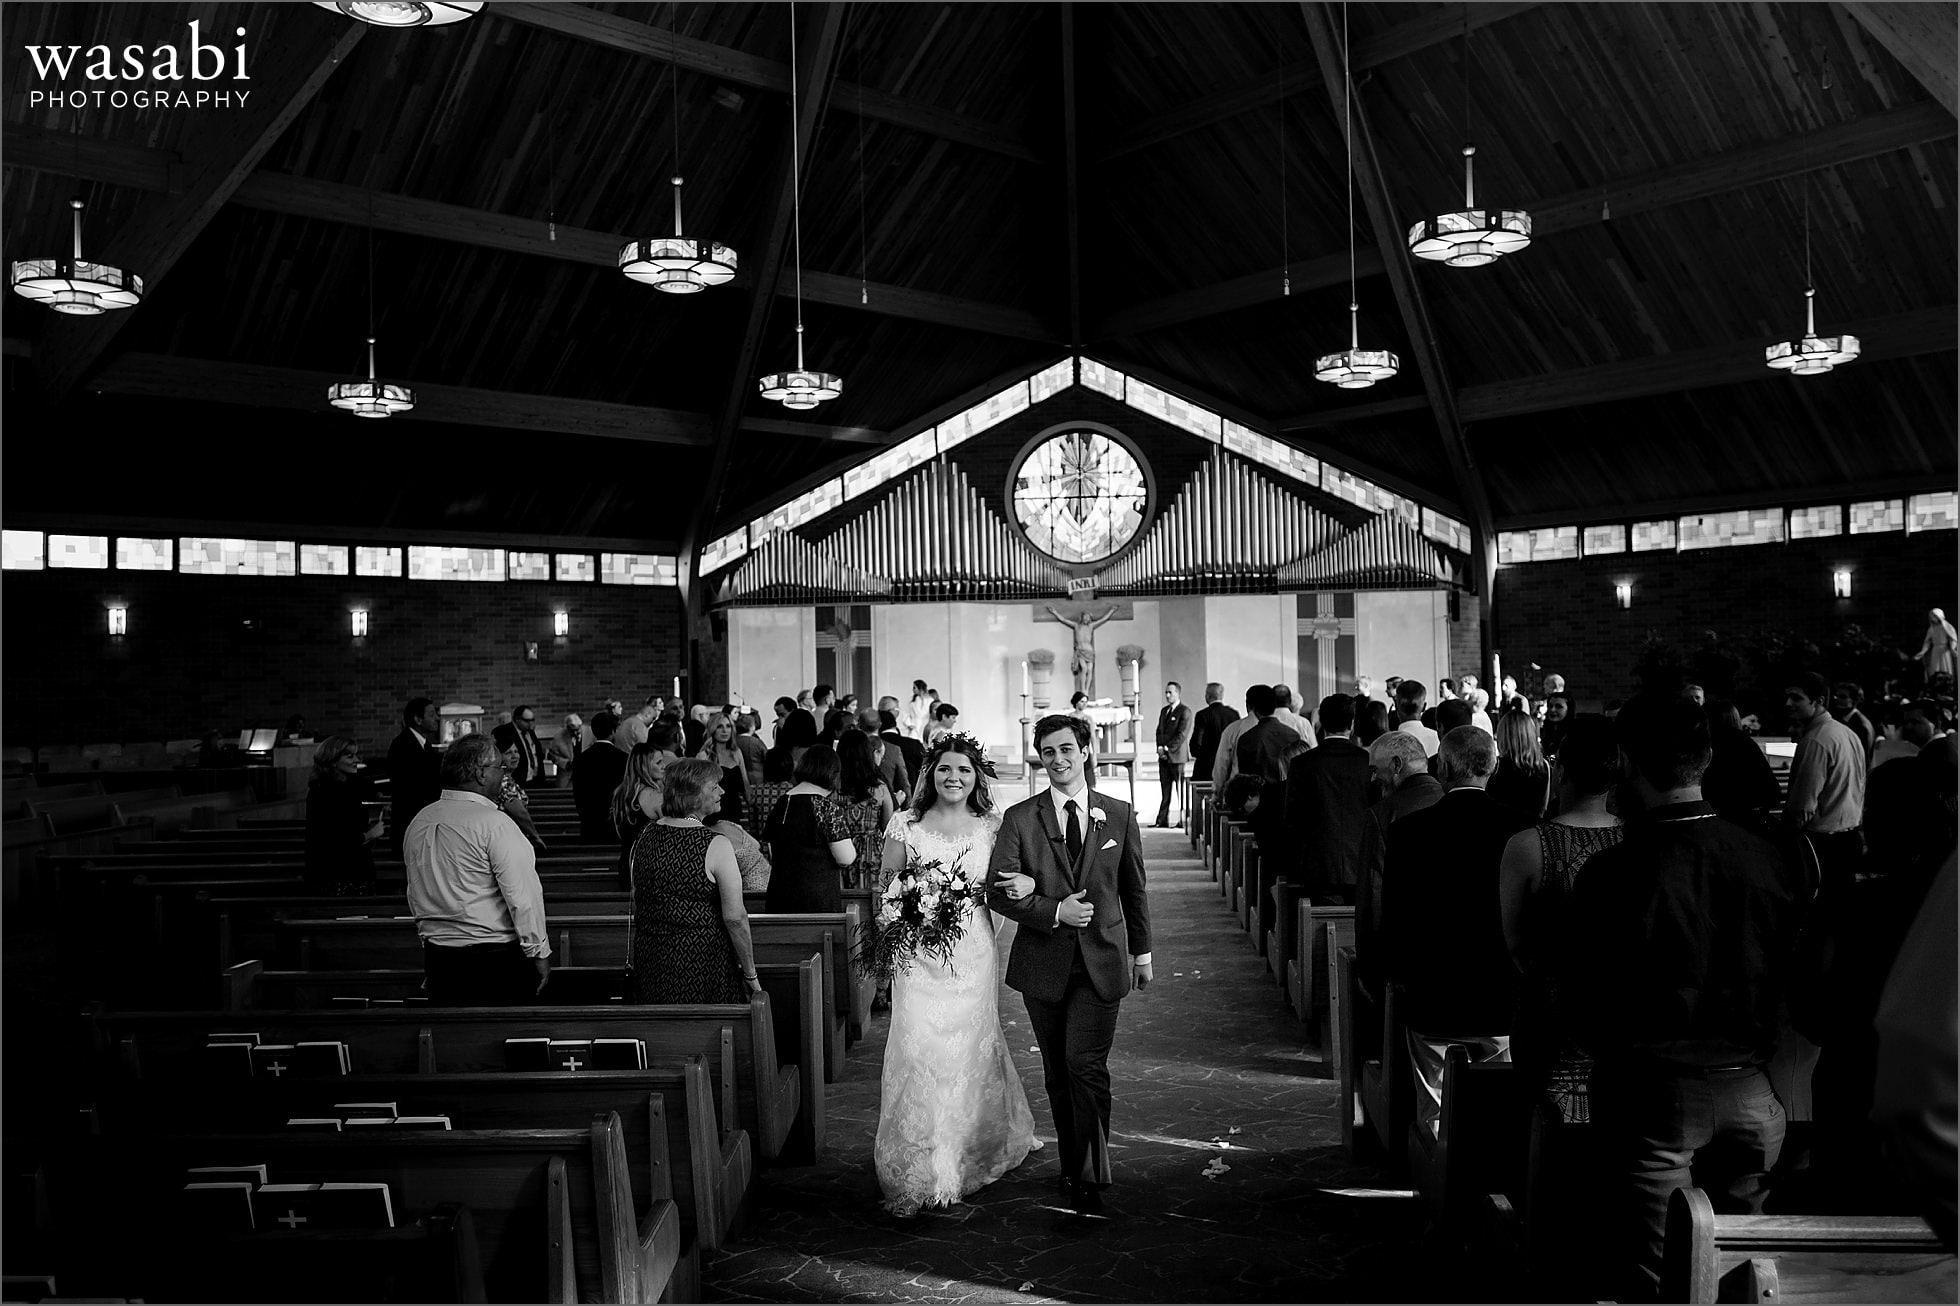 bride and groom walk back down the aisle after being married at Sacred Heart Catholic Church in Palos Hills